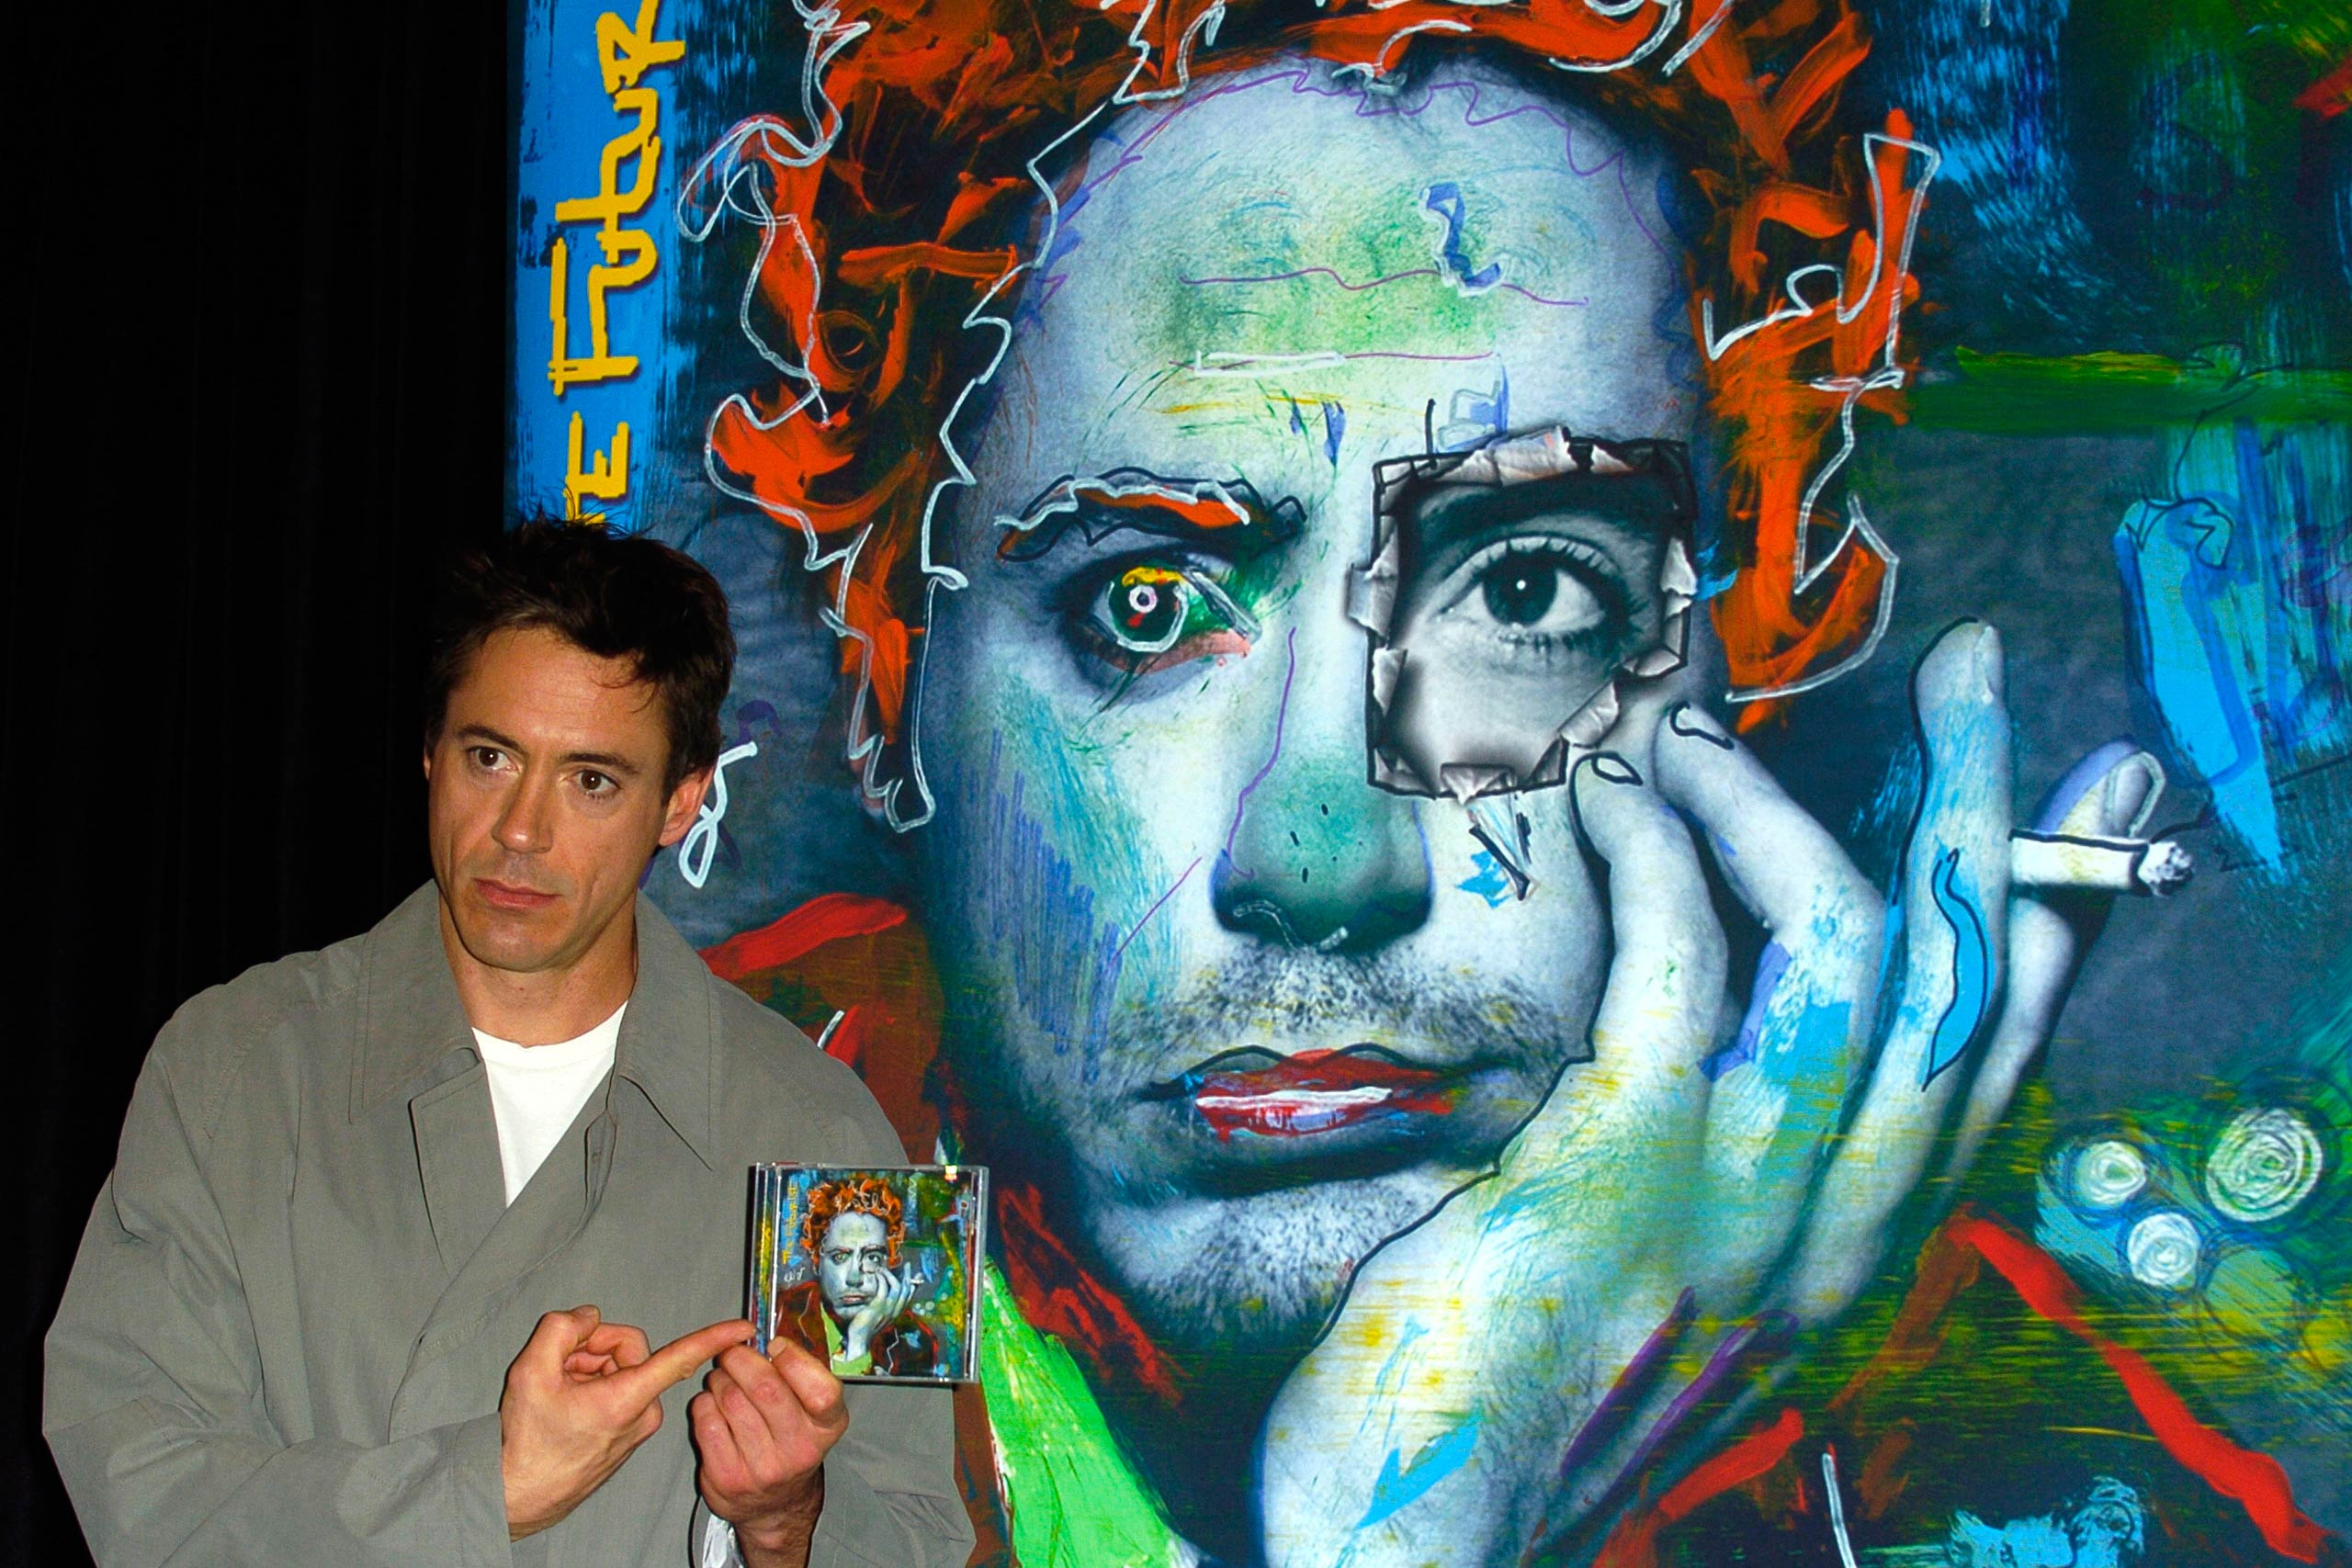 """Robert Downey Jr. during a signing for his Debut CD """"The Futurist"""" at the Virgin Megastore in Los Angeles, Calif. in 2004."""